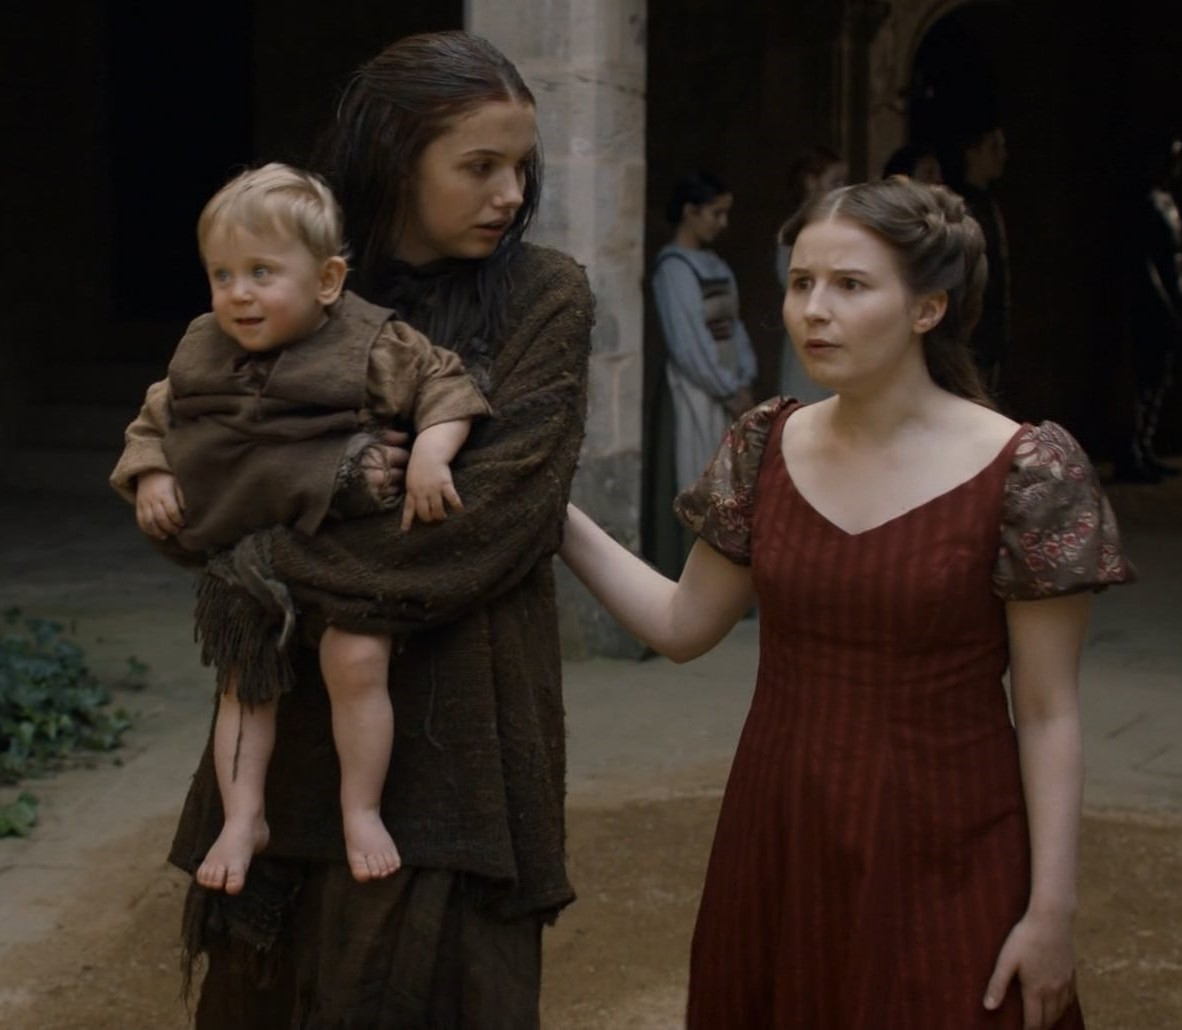 Hannah Murray and Rebecca Benson in Game of Thrones (2011)